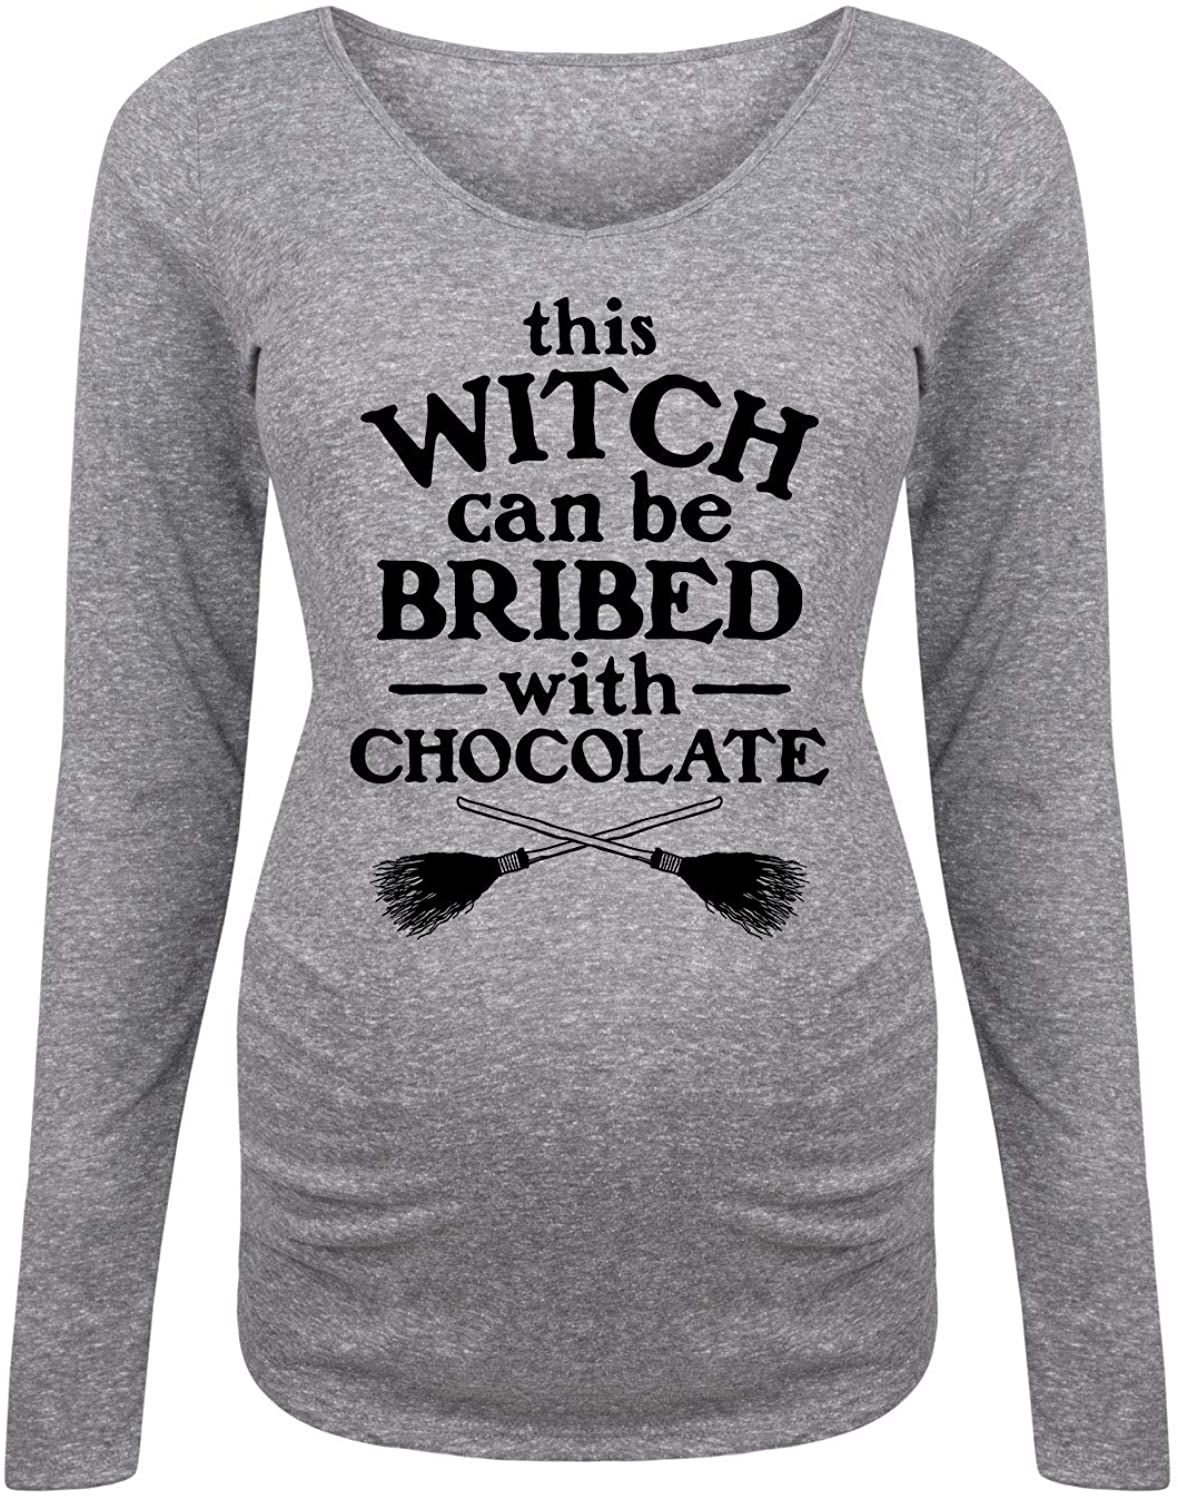 This Witch Can Be Bribed with Chocolate - Maternity Long Sleeve Tee